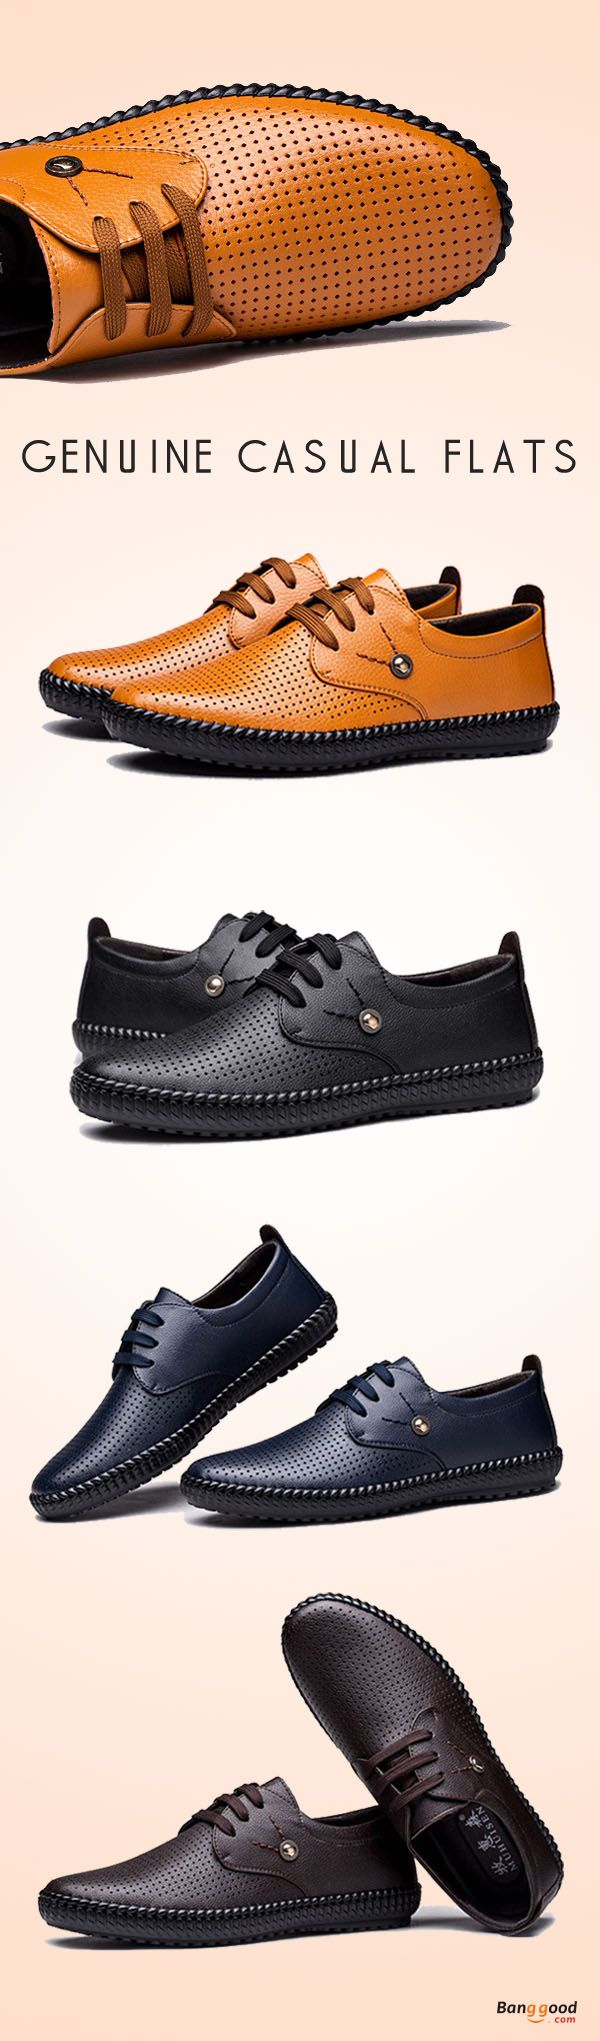 US$44.10+Free shipping. Men Shoes, Casual Oxfords Flats, Breathable, Hollow Out, Genuine Leather, Casual. Color: Black, Brown, Blue, Camel. Show your style,shop now~